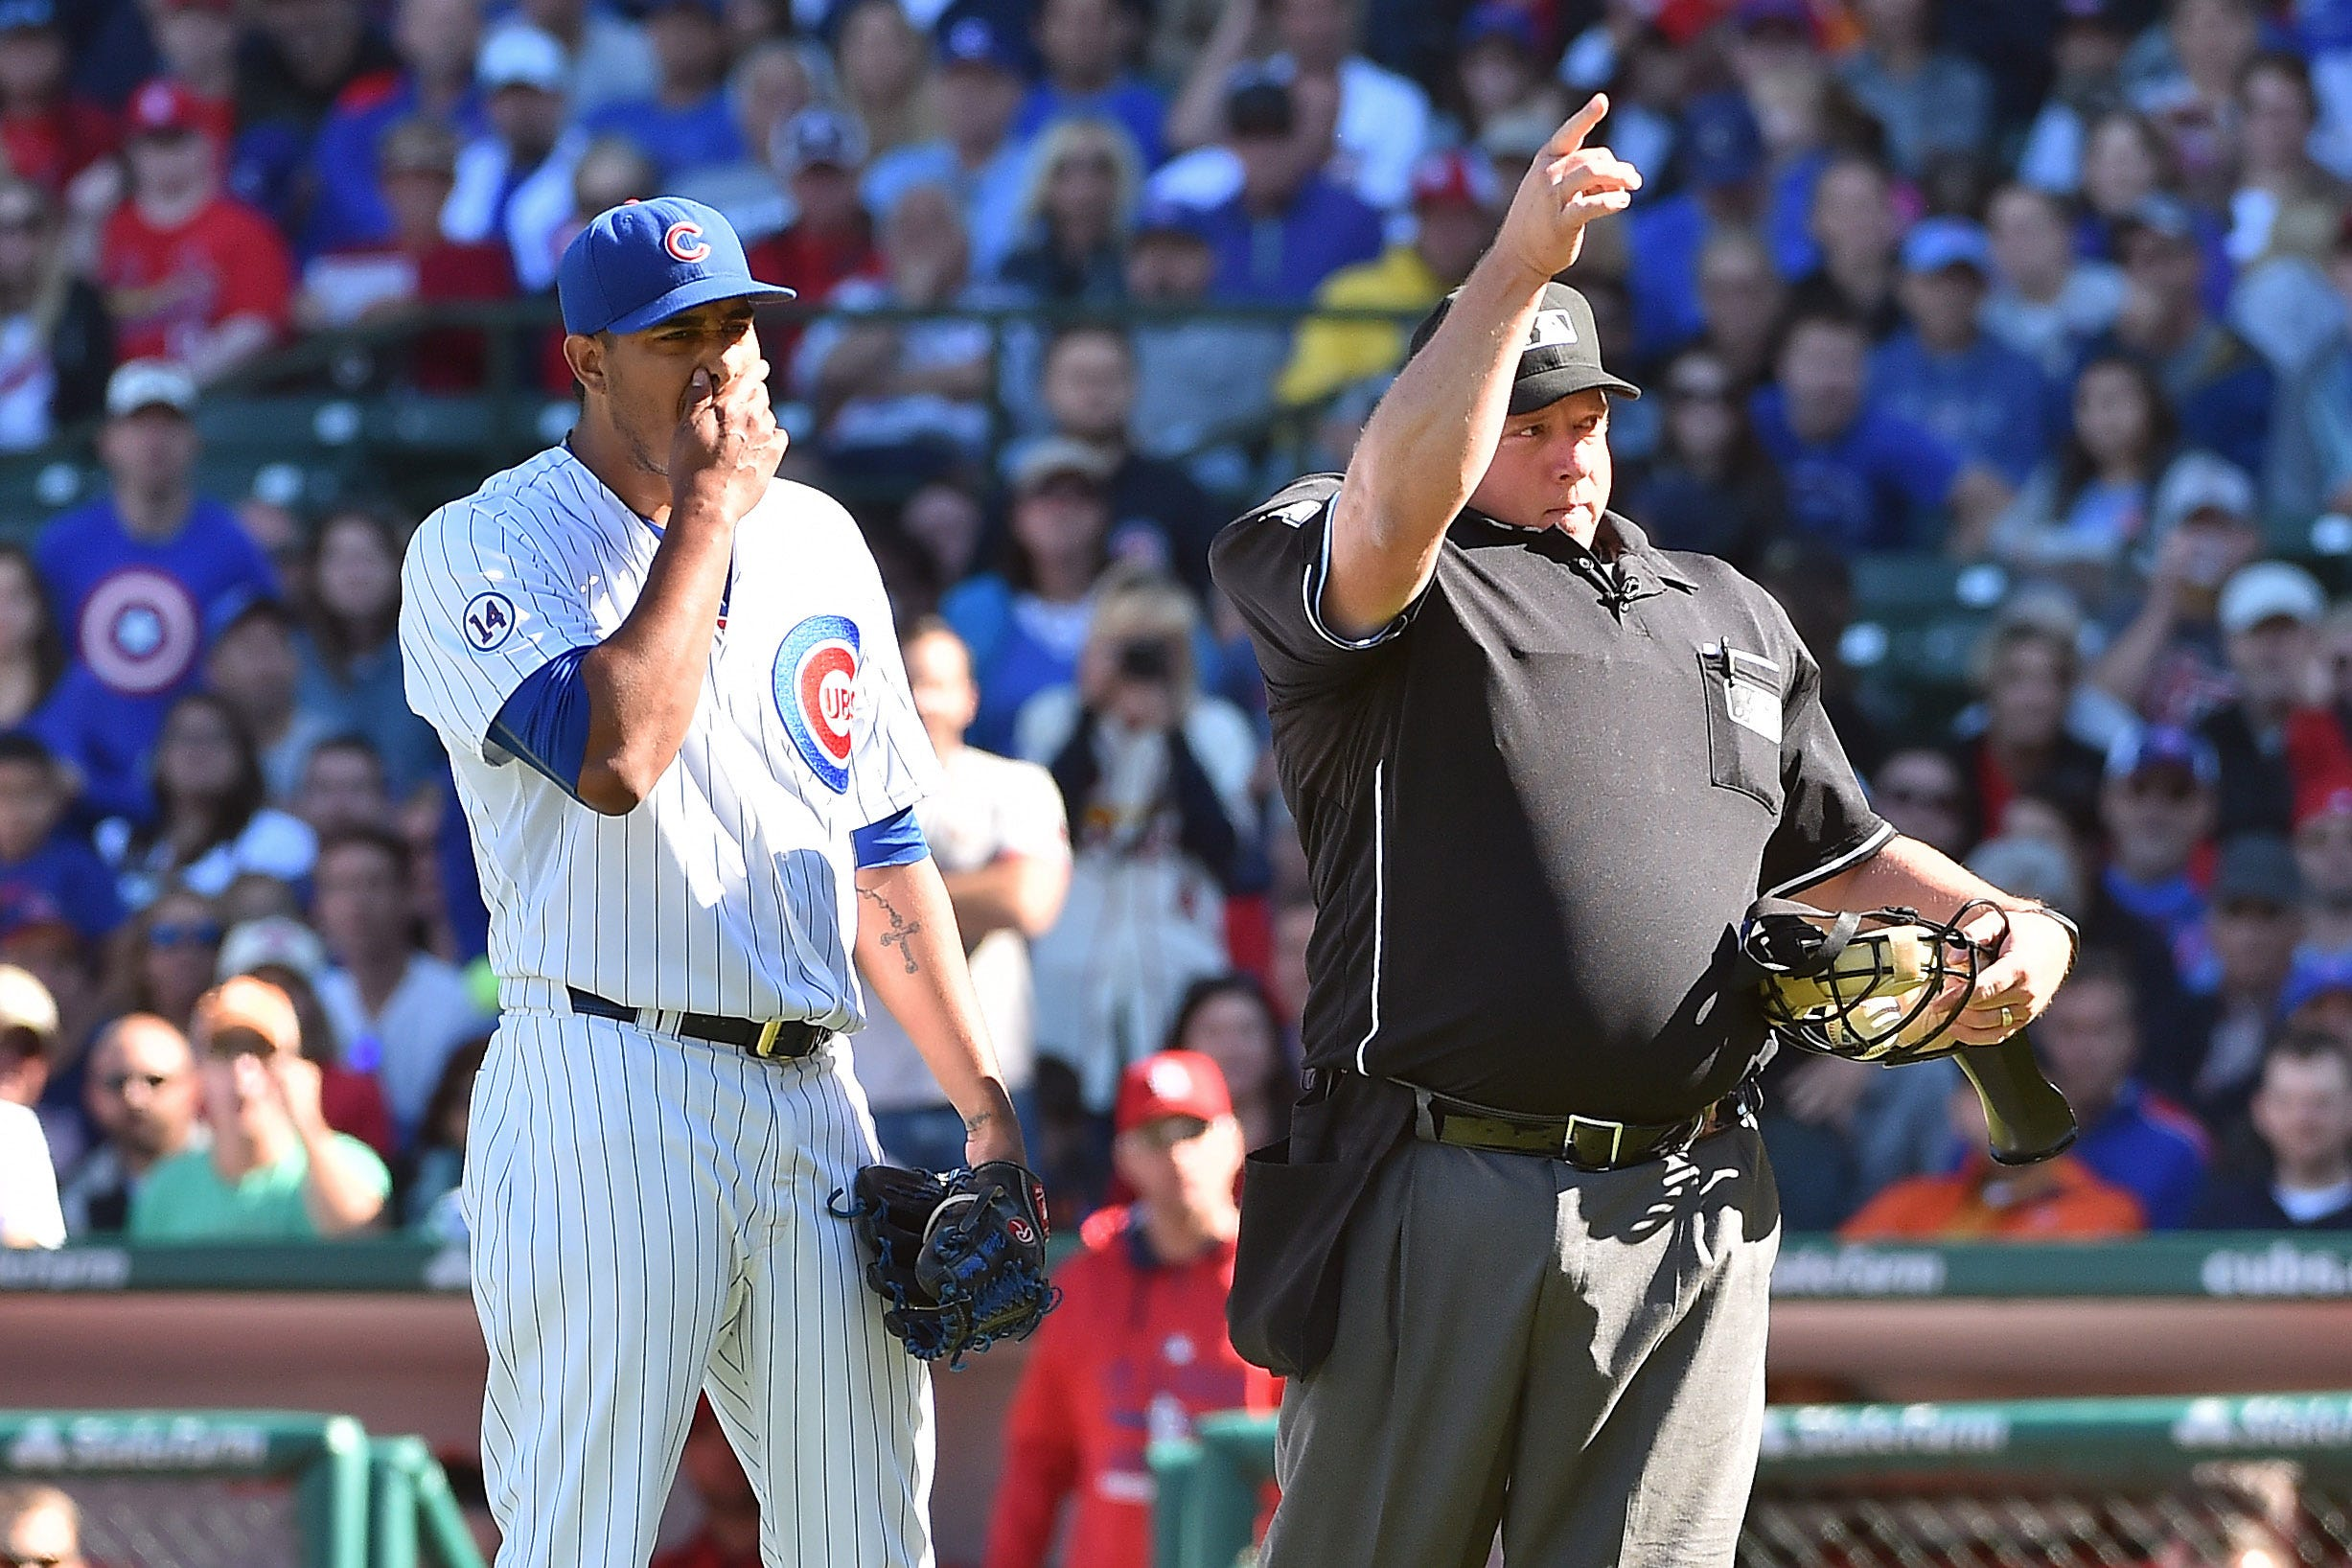 Umpire in Yankees-White Sox game has live bug pulled out of his ear during ninth inning